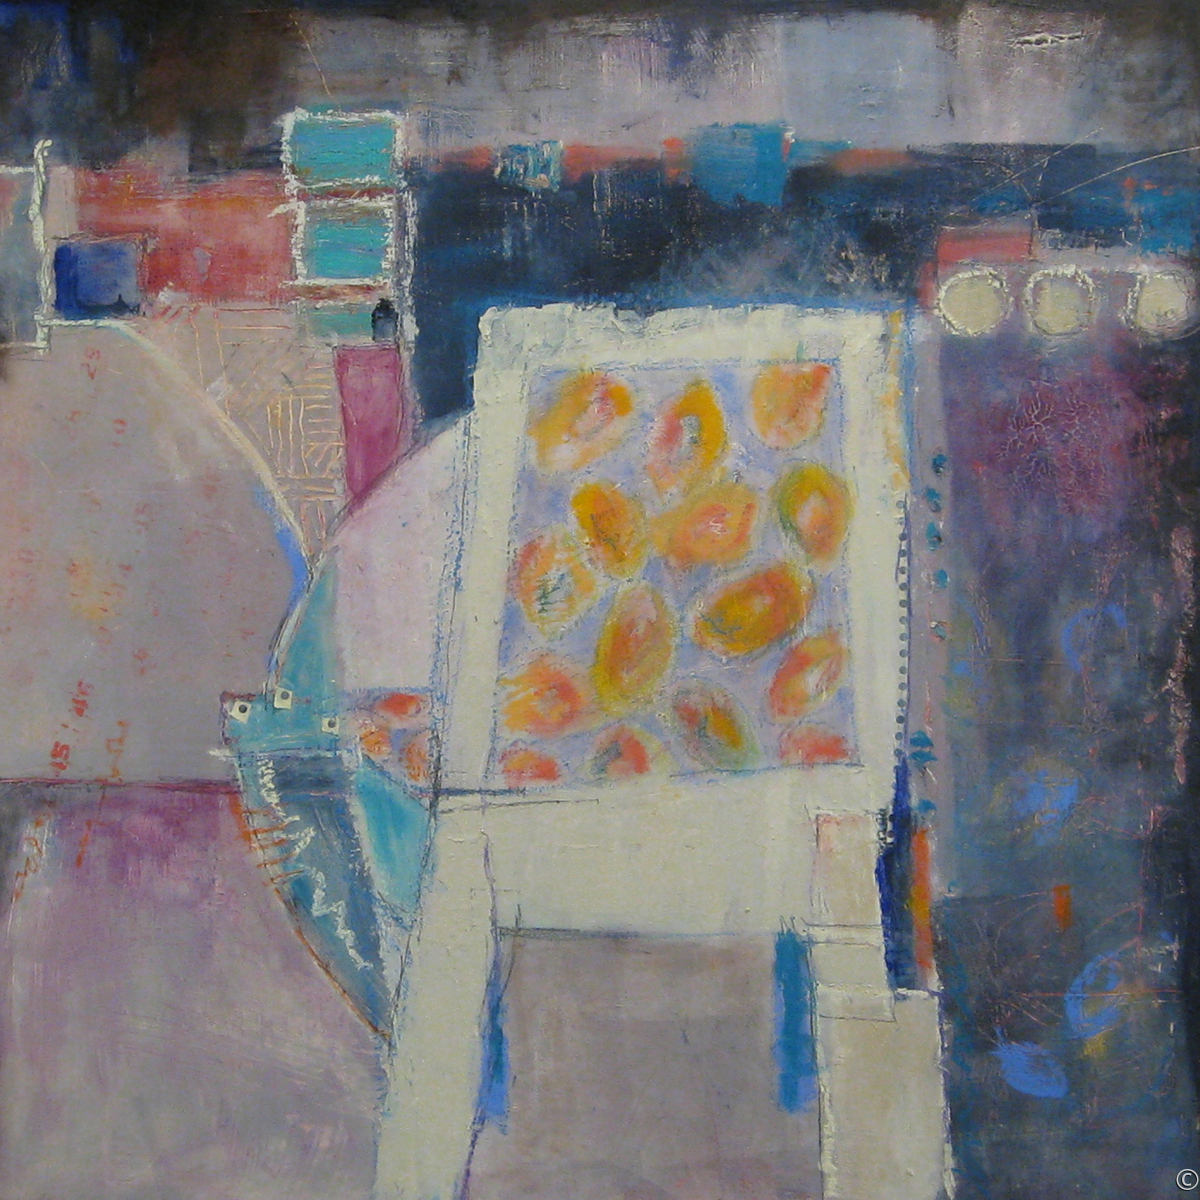 'MARIGOLD CHAIR' by Krasner (large view)